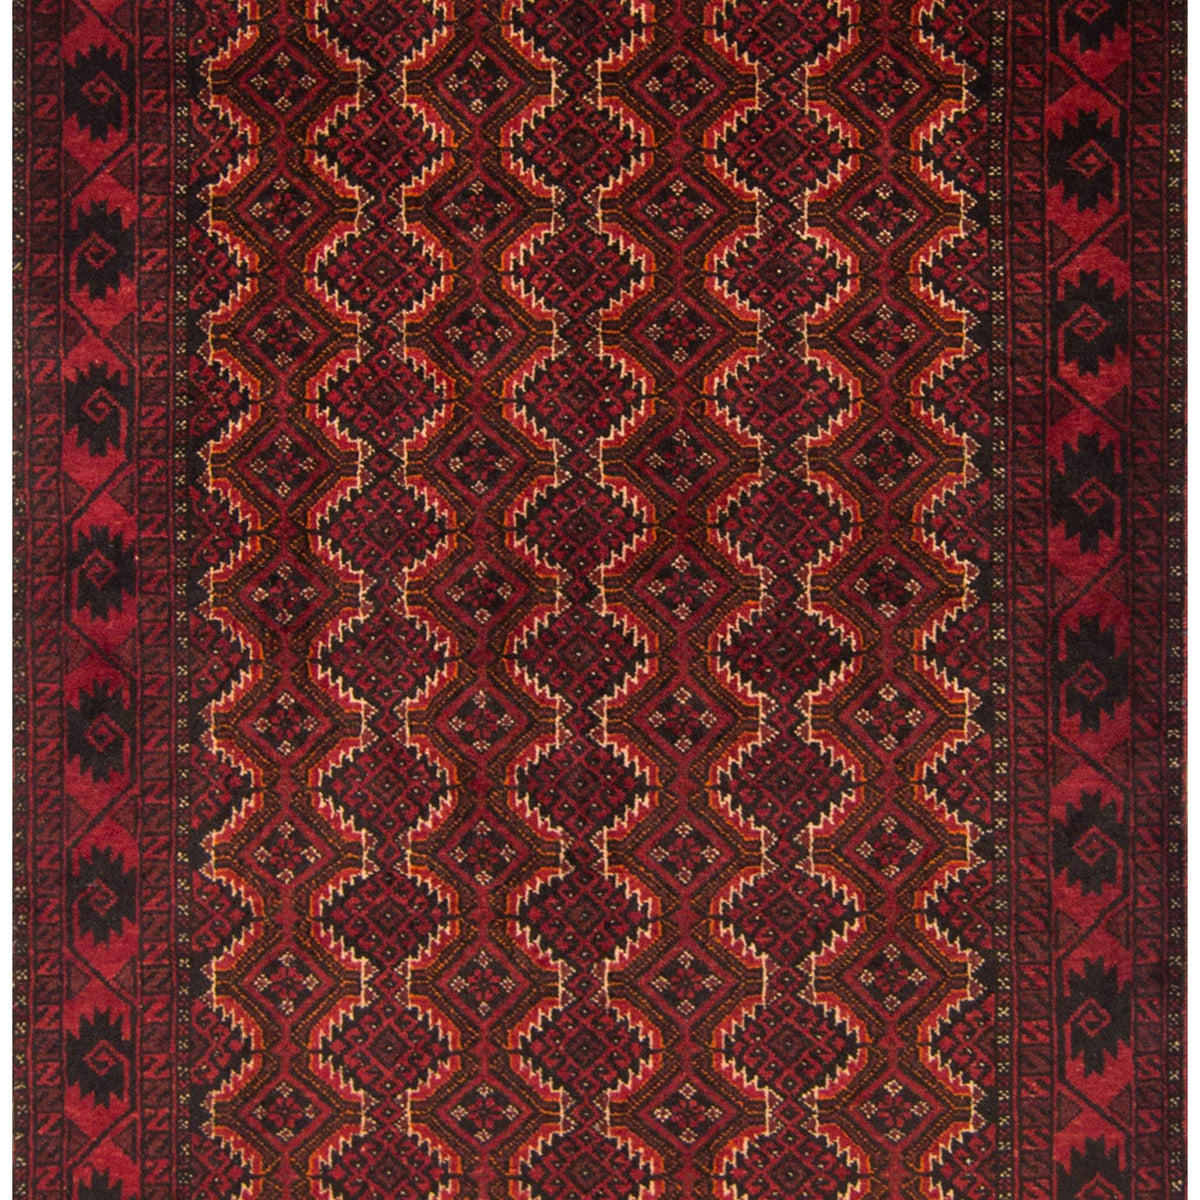 Persian Baluchi Rug 108cm x 207cm Persian-Rug | House-of-Haghi | NewMarket | Auckland | NZ | Handmade Persian Rugs | Hand Knotted Persian Rugs